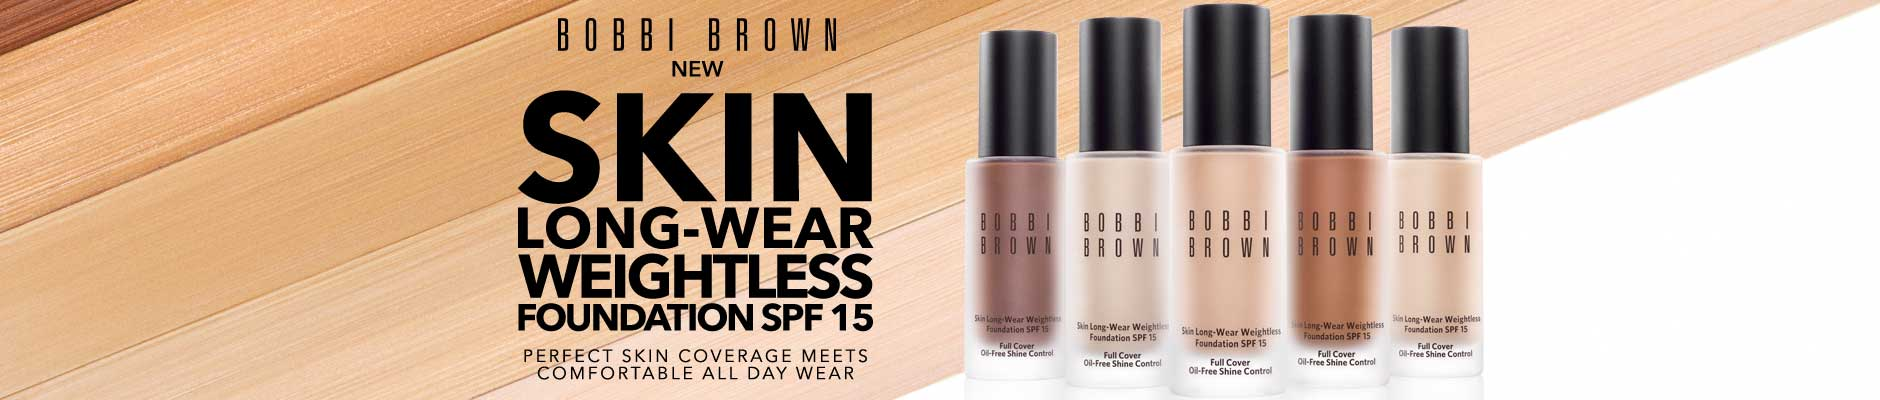 Bobbi Brown: New Skin Long-Wear Weightless Foundation SPF 15 - Perfect Skin Coverage Meets Comfortable All Day Wear